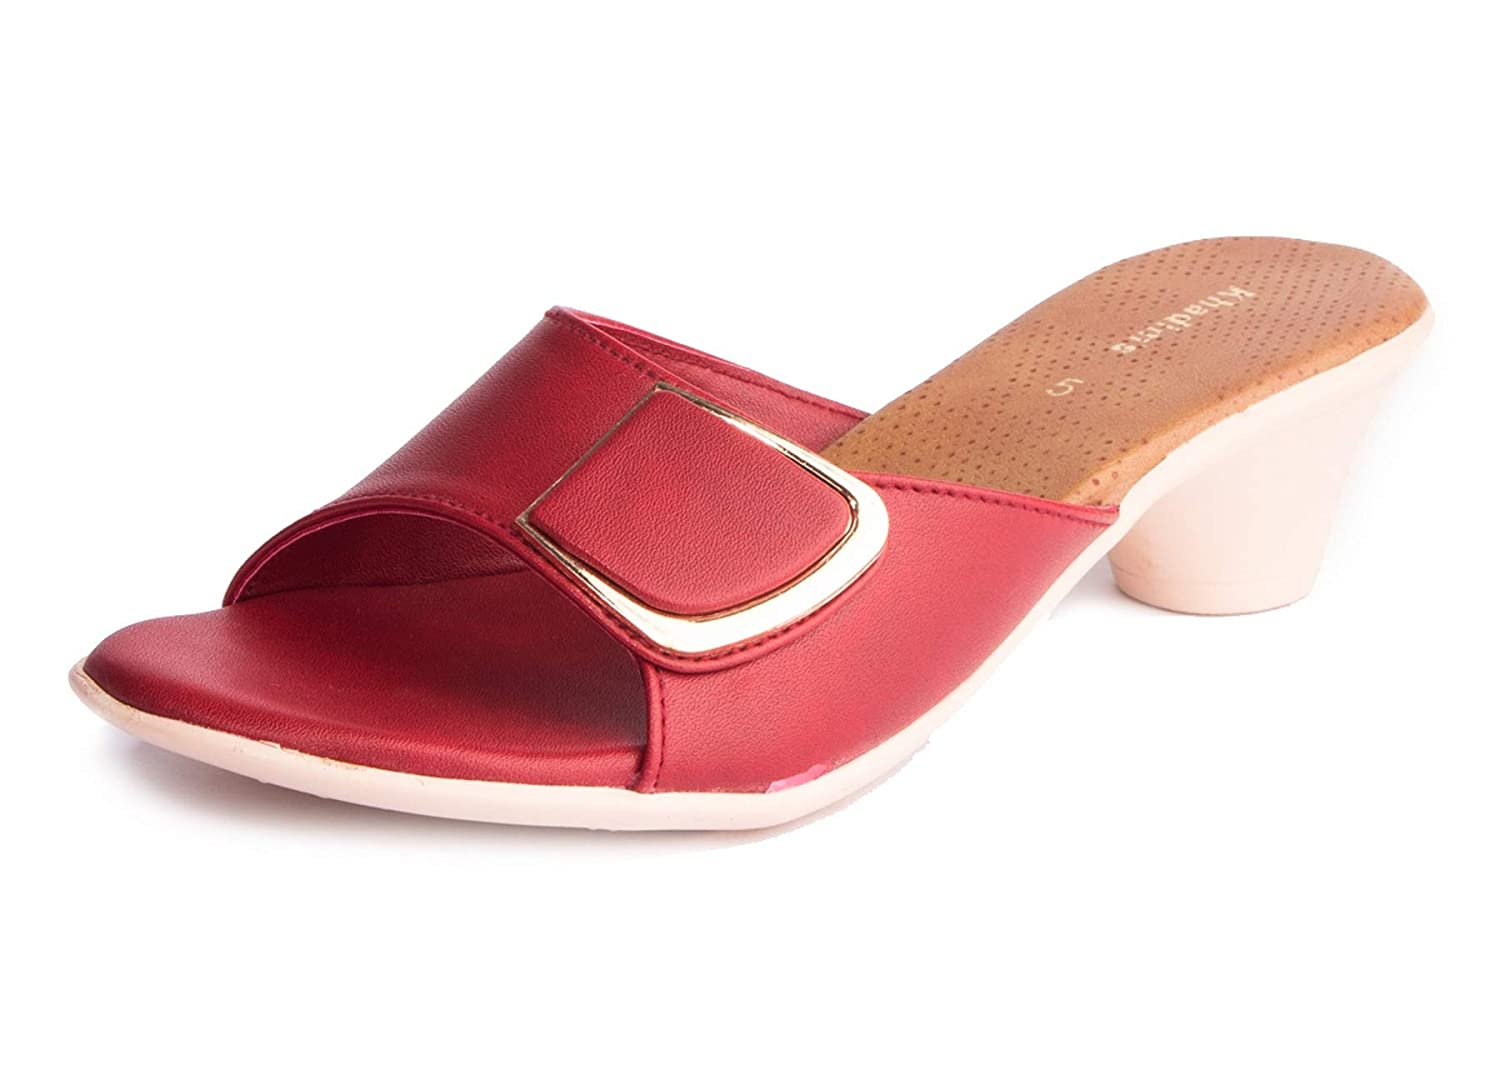 get online 2018 shoes united kingdom Buy Khadim's Women's Red Synthetic Casual Mule Sandals (4) at ...